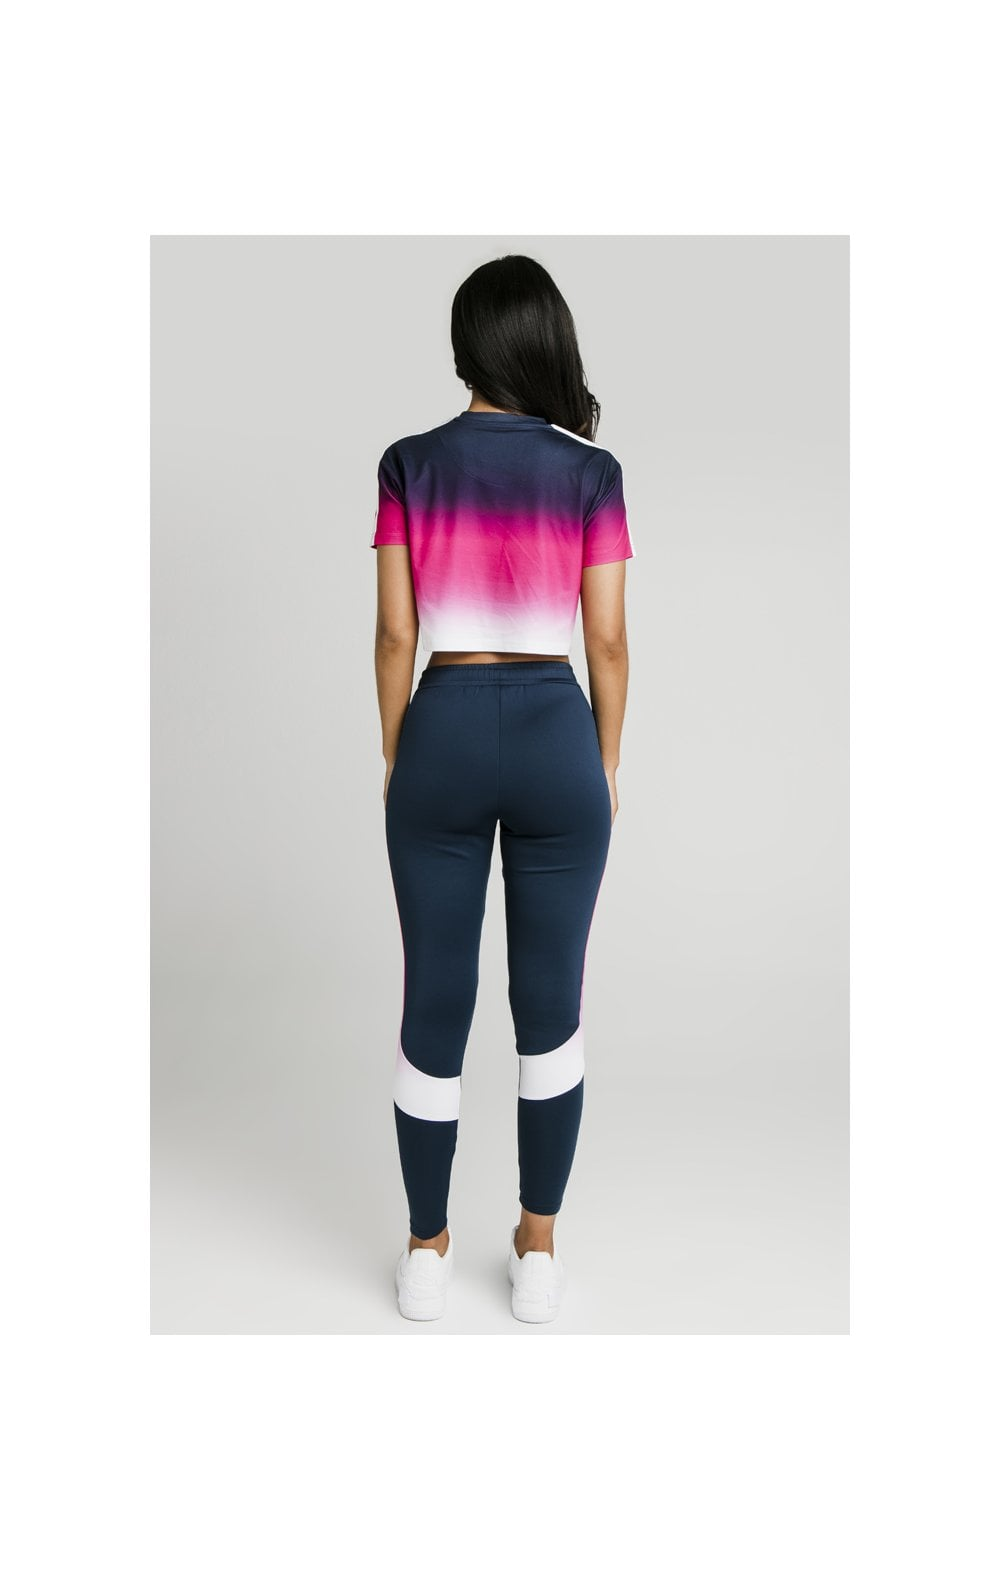 Load image into Gallery viewer, SikSilk Fade Tape Crop Tee - Navy, Pink & White (7)